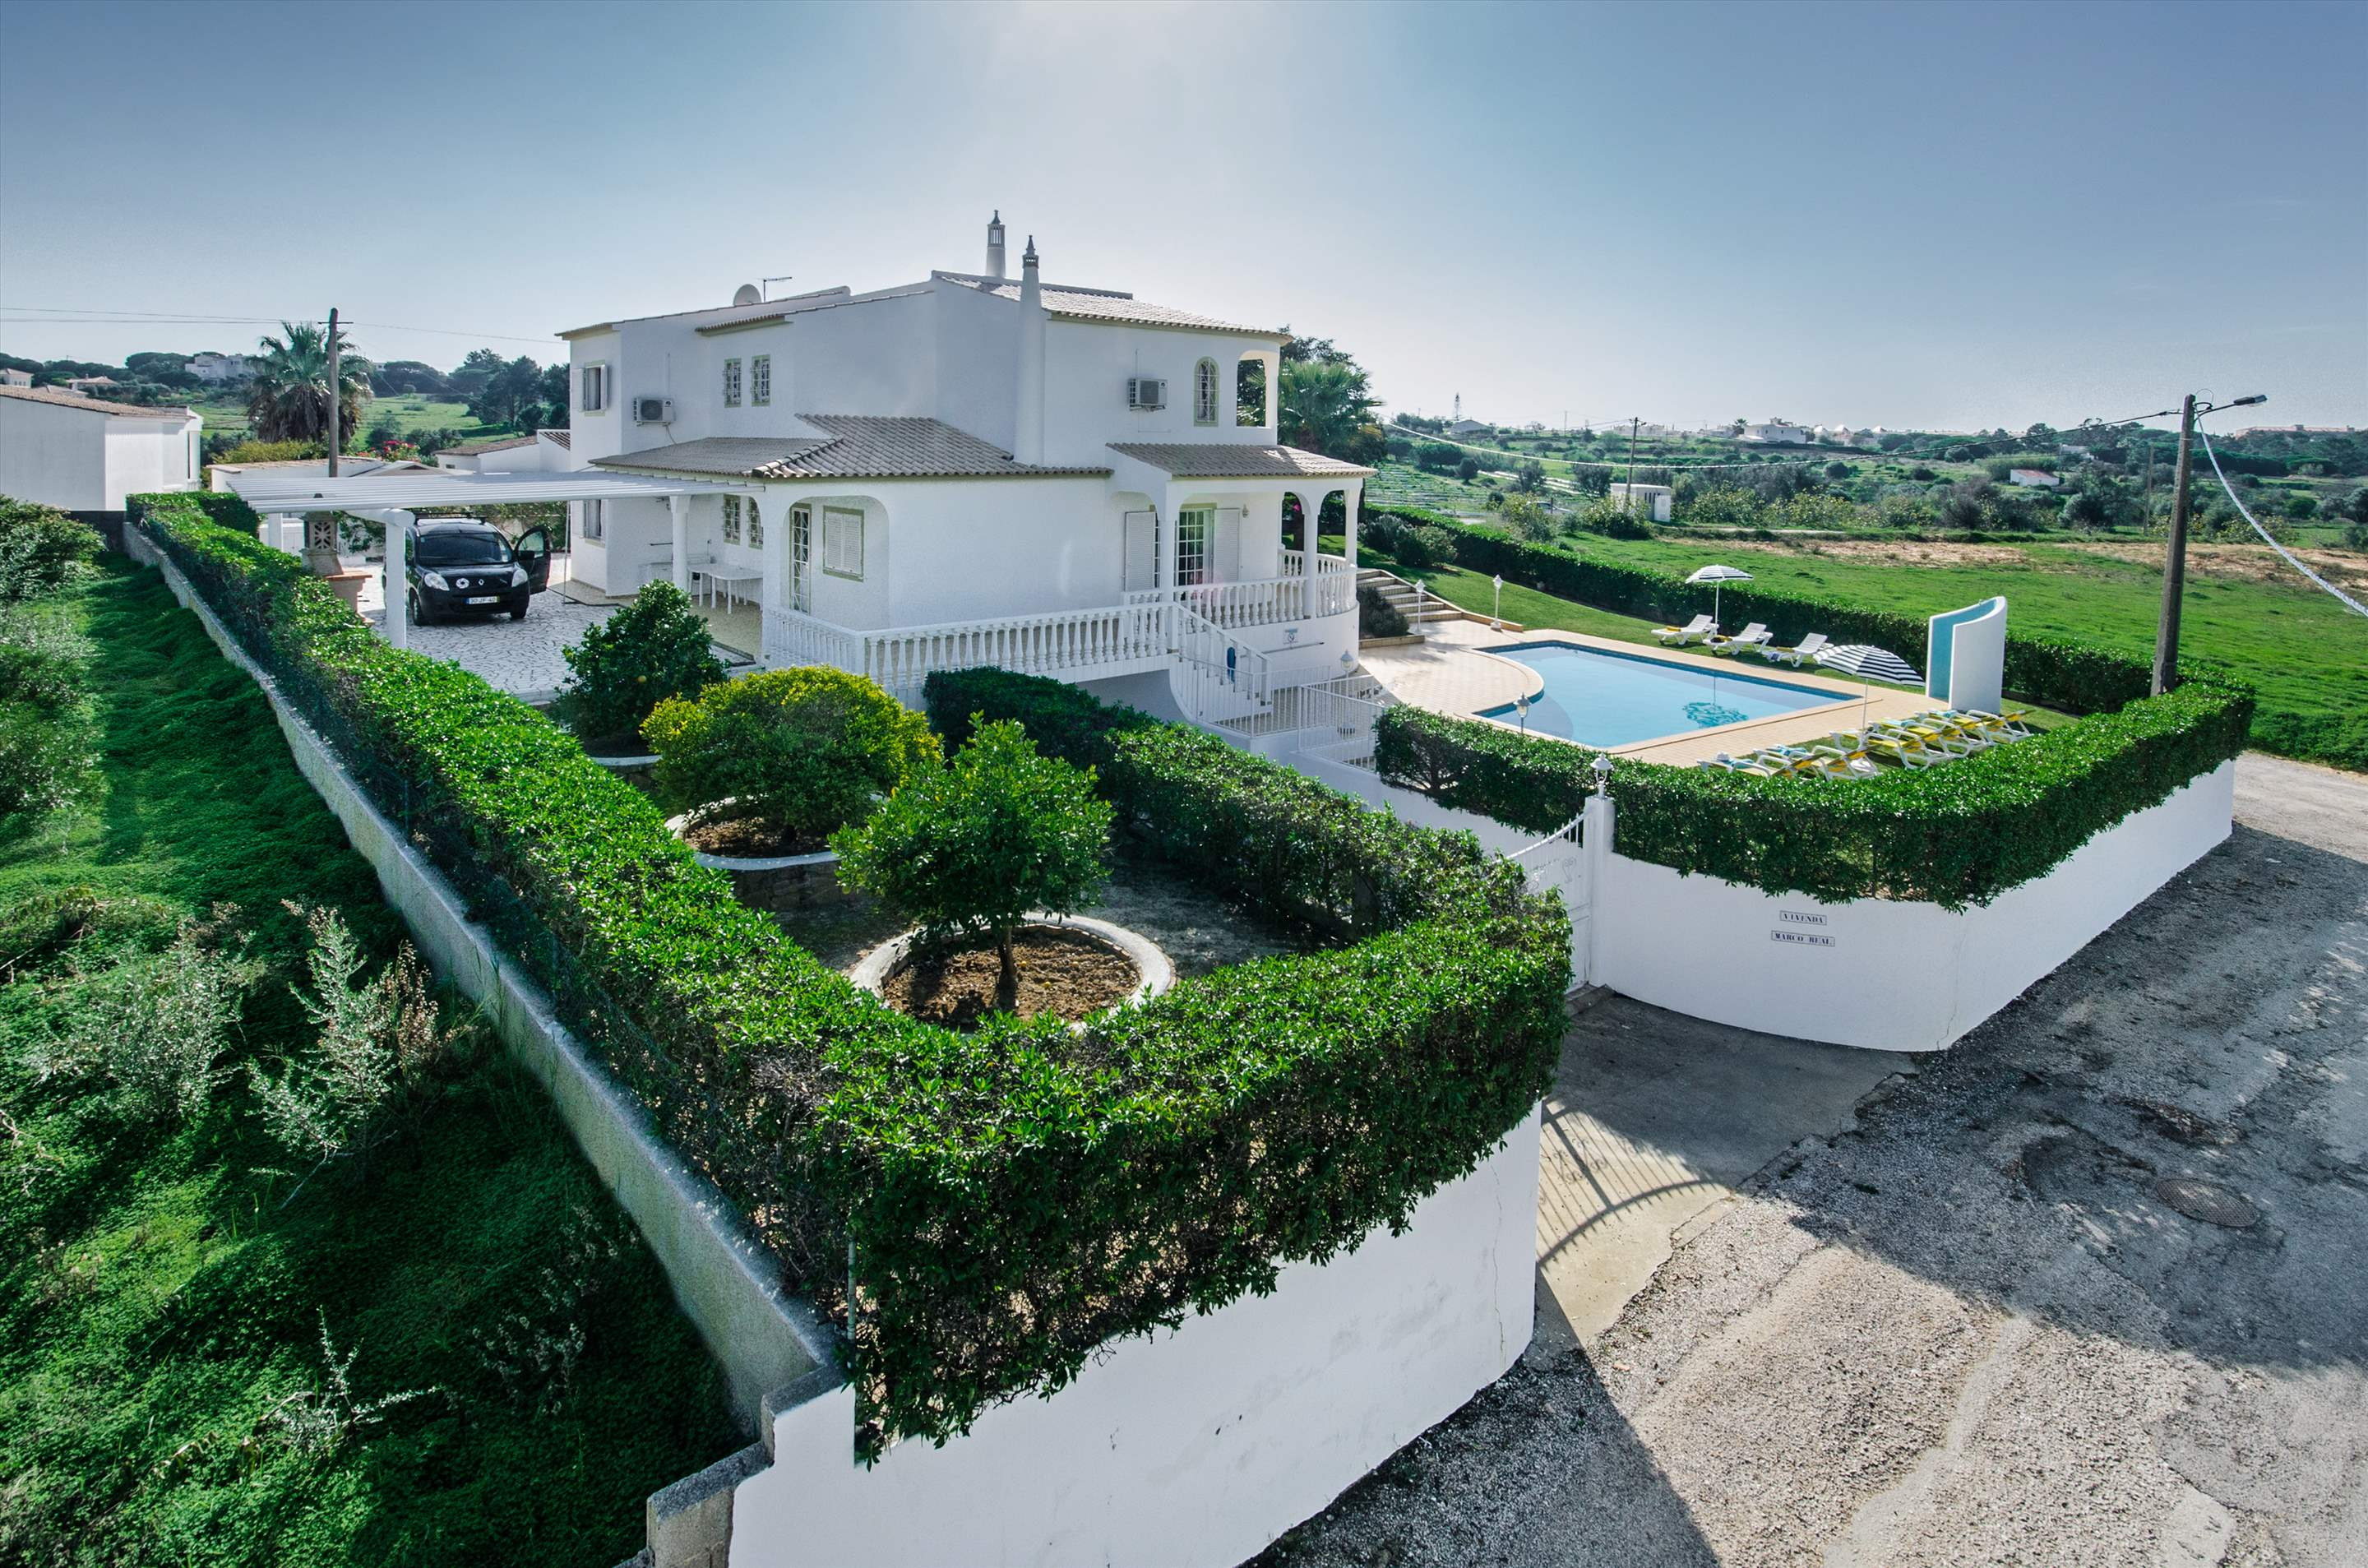 Villa Marco Real, 7-8 persons rate, 4 bedroom villa in Gale, Vale da Parra and Guia, Algarve Photo #12